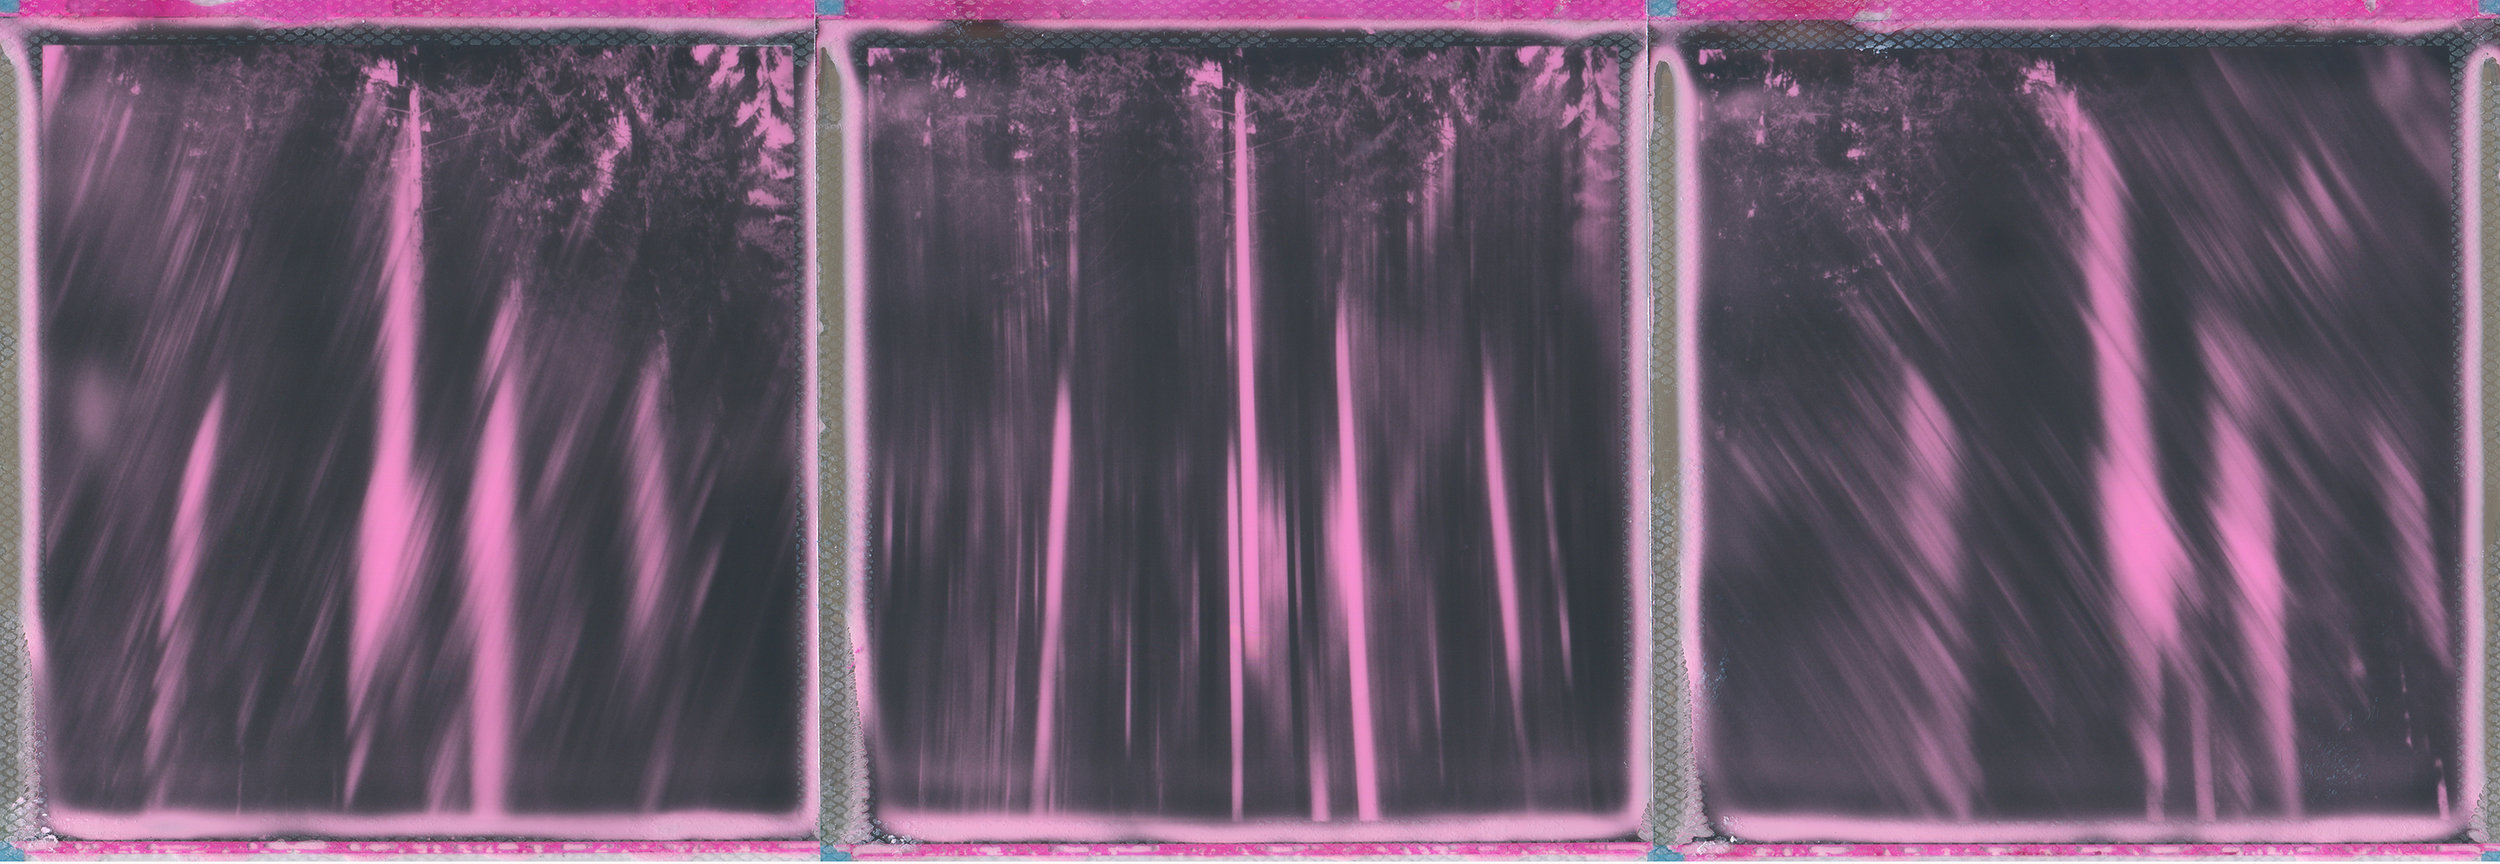 Me, Abstracted | Polaroid SX70 (Converted) | Impossible Project Black & Pink Duochrome | A Triptych | Ina Echternach